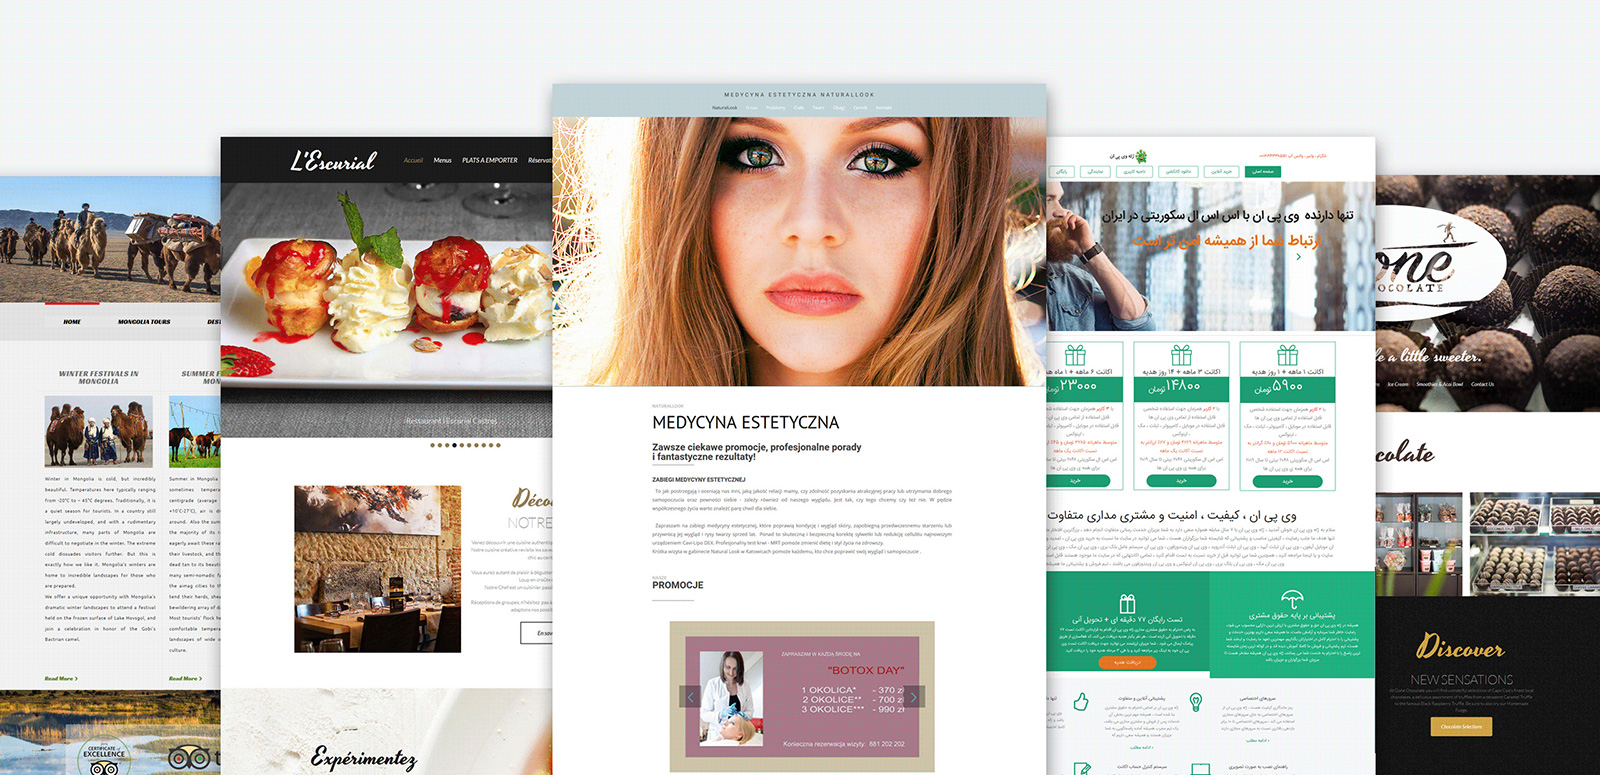 Panorax - Interior Design Moto CMS 3 Template